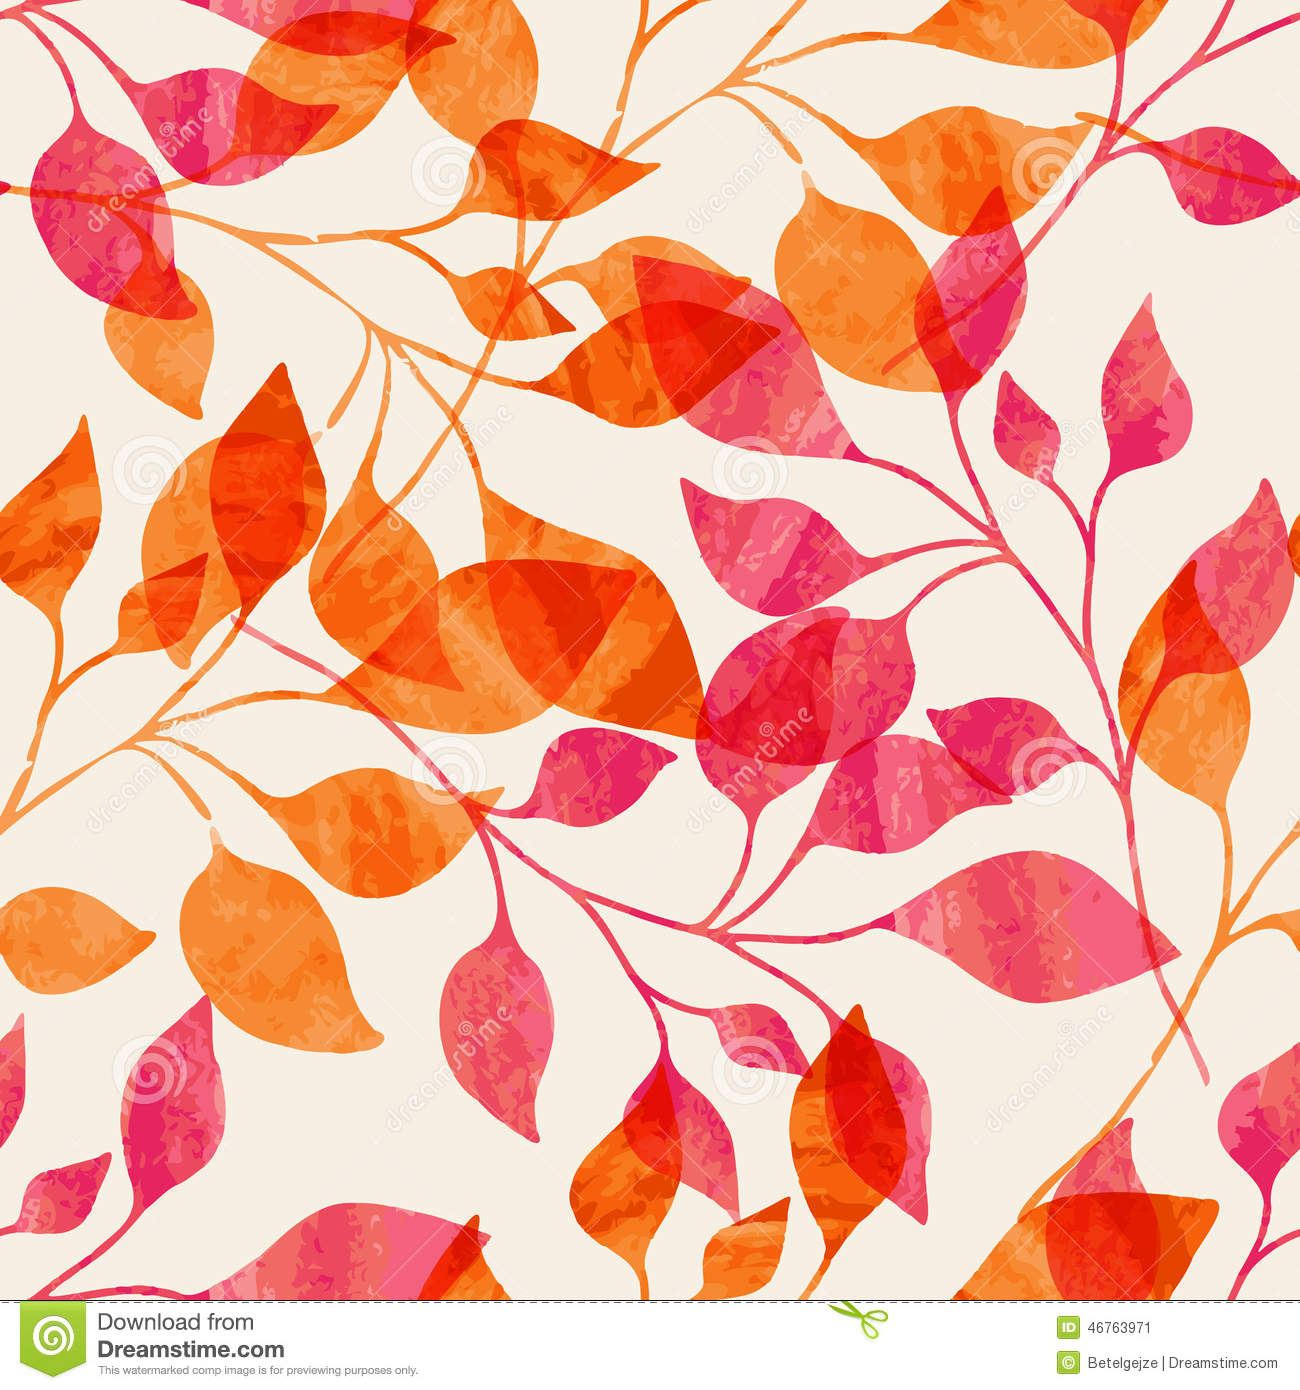 Watercolor seamless pattern with pink and orange autumn leaves. Vector nature background.